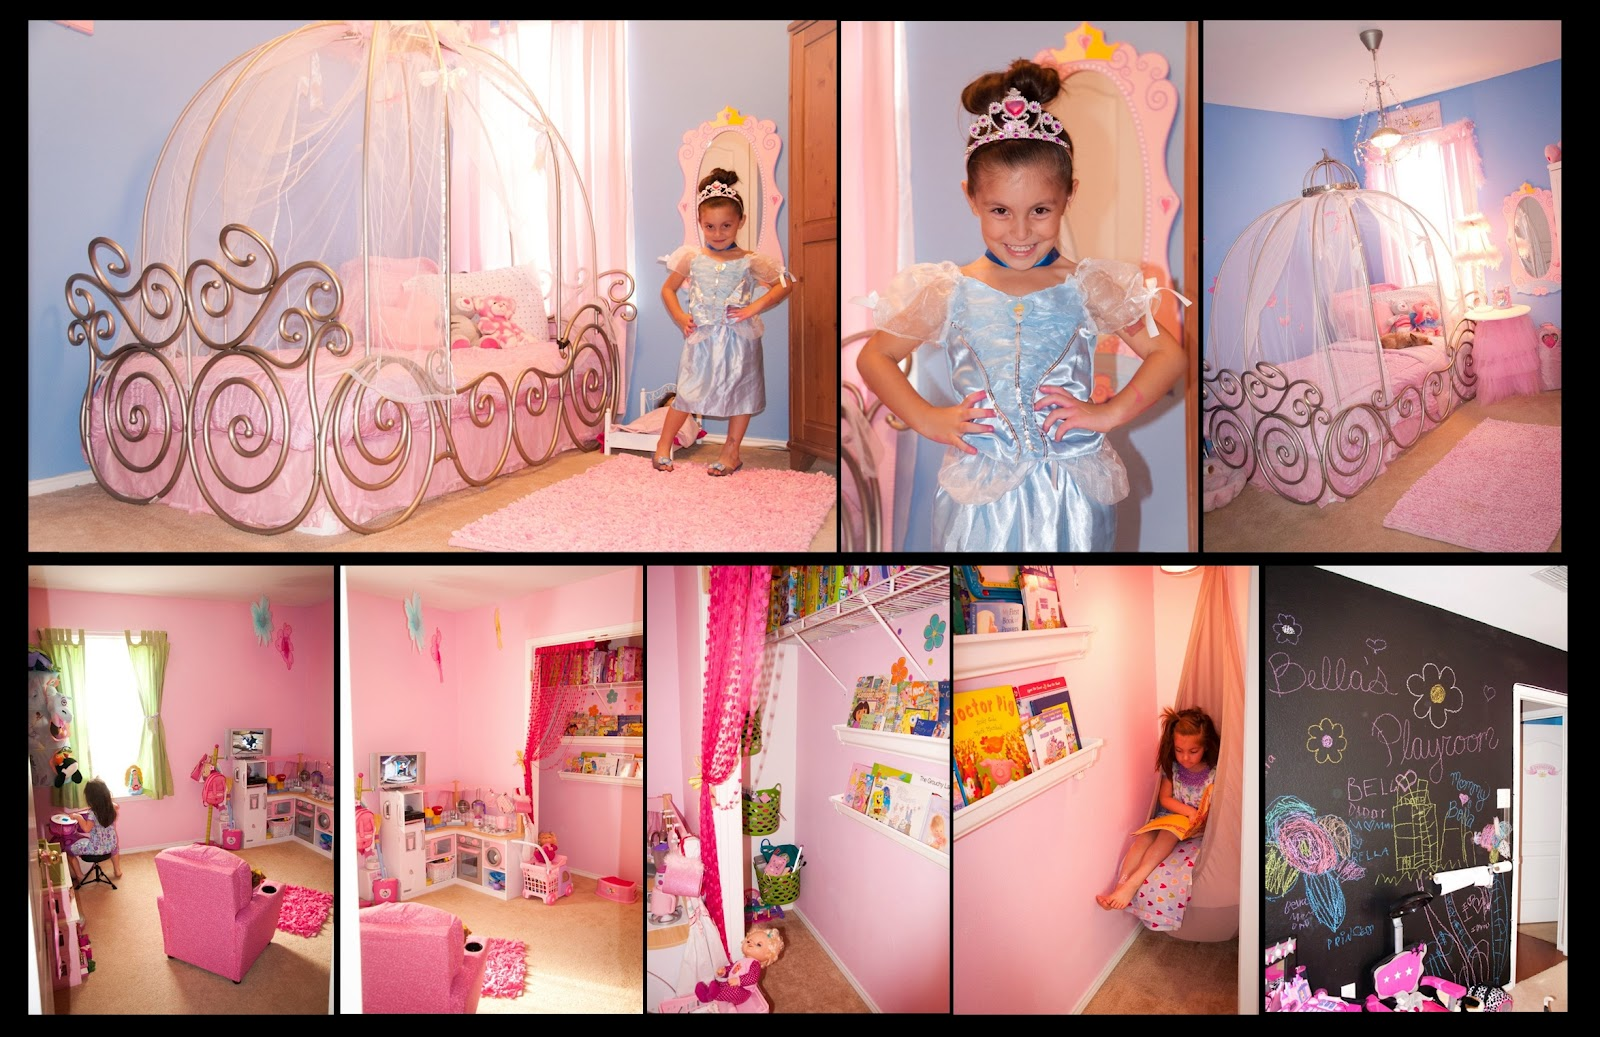 100 11 year old bedroom ideas cheap ways to decorate a 11 year old girl bedroom ideas